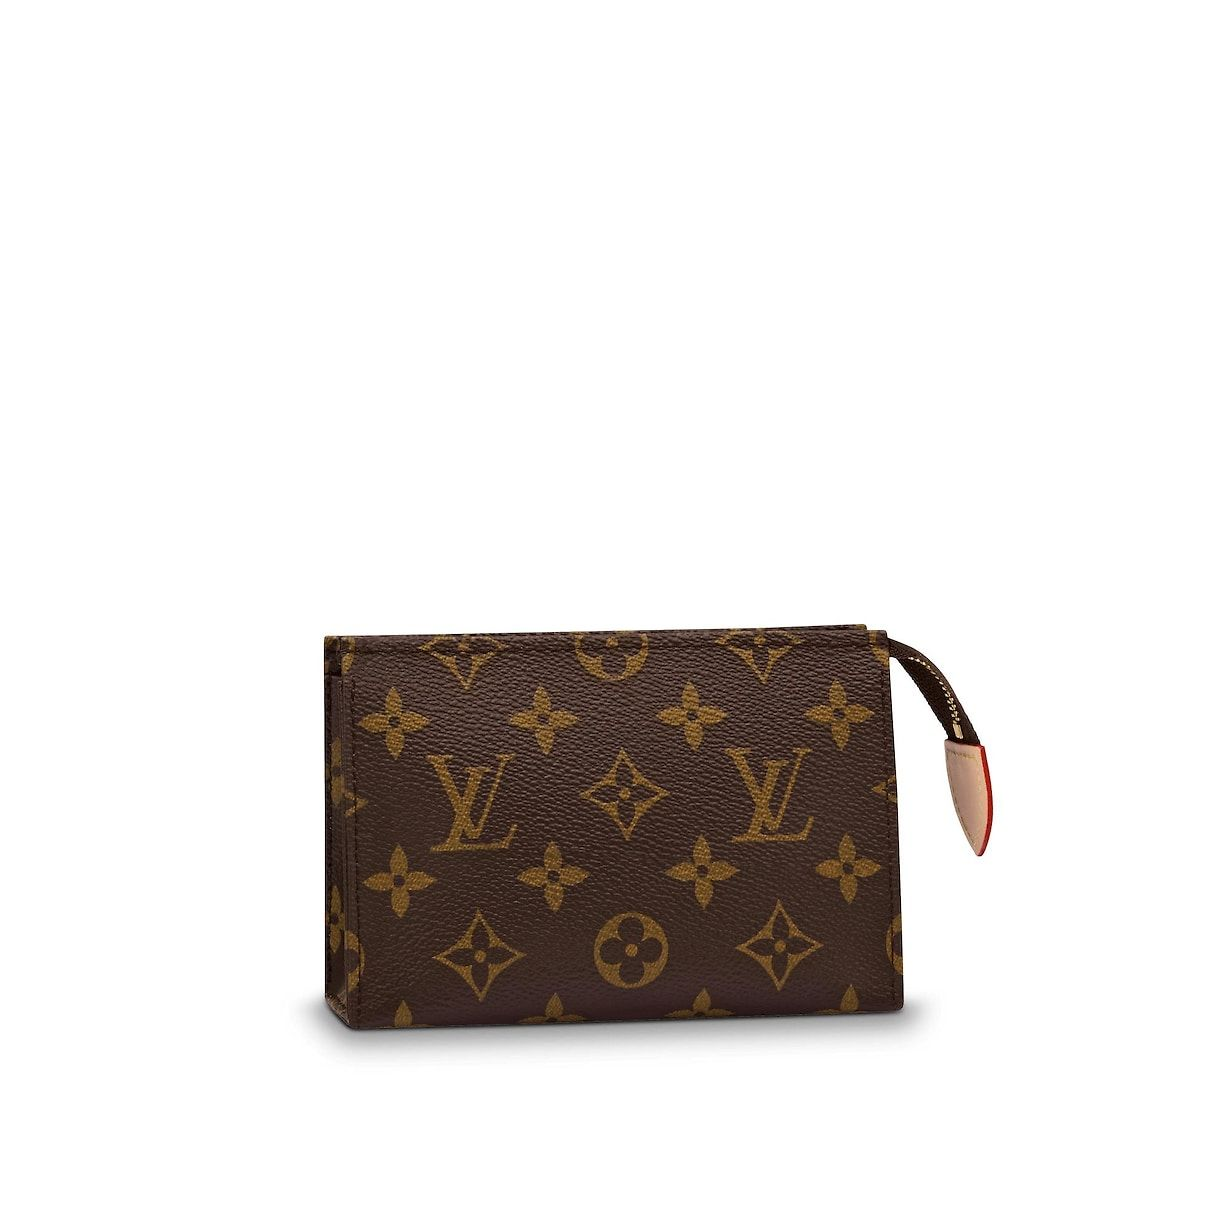 3dcd9a301104 View 1 - Women s Luxury Christmas Gift - Toiletry Pouch 15 Monogram Canvas  Women Travel Travel